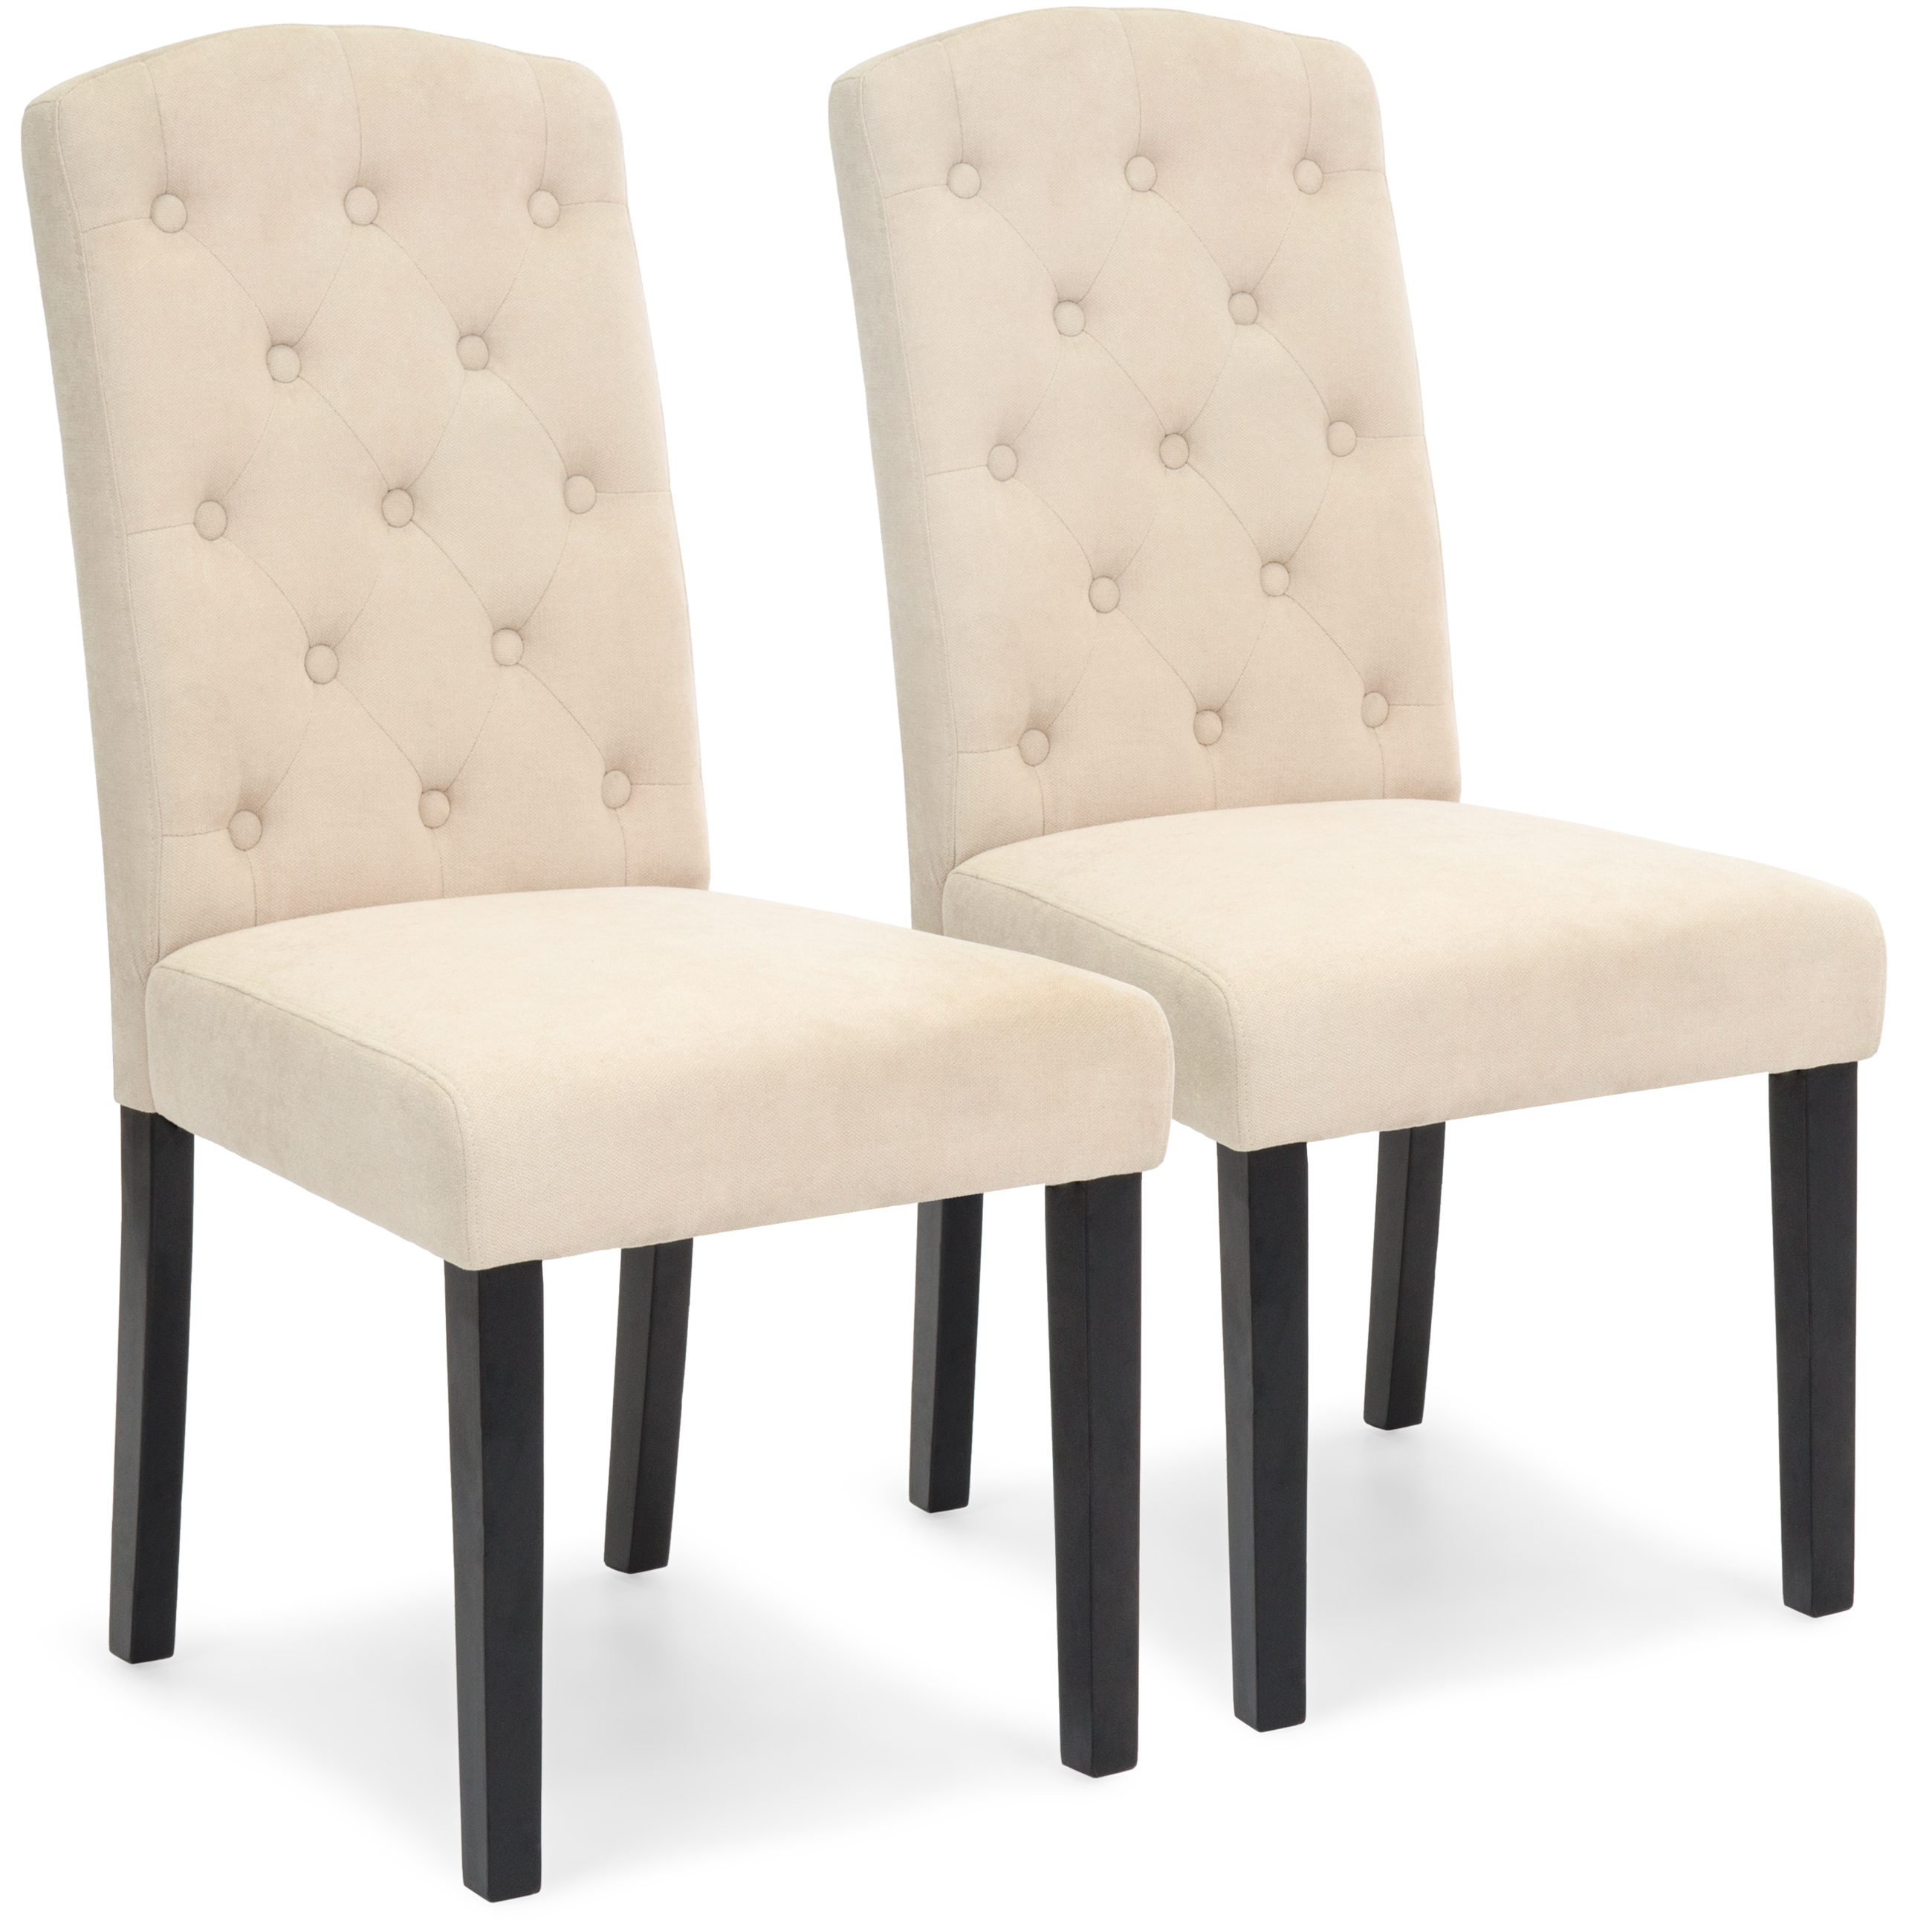 Best Choice Products Set of 2 Fabric Tufted Parsons Dining Chairs (Beige) by